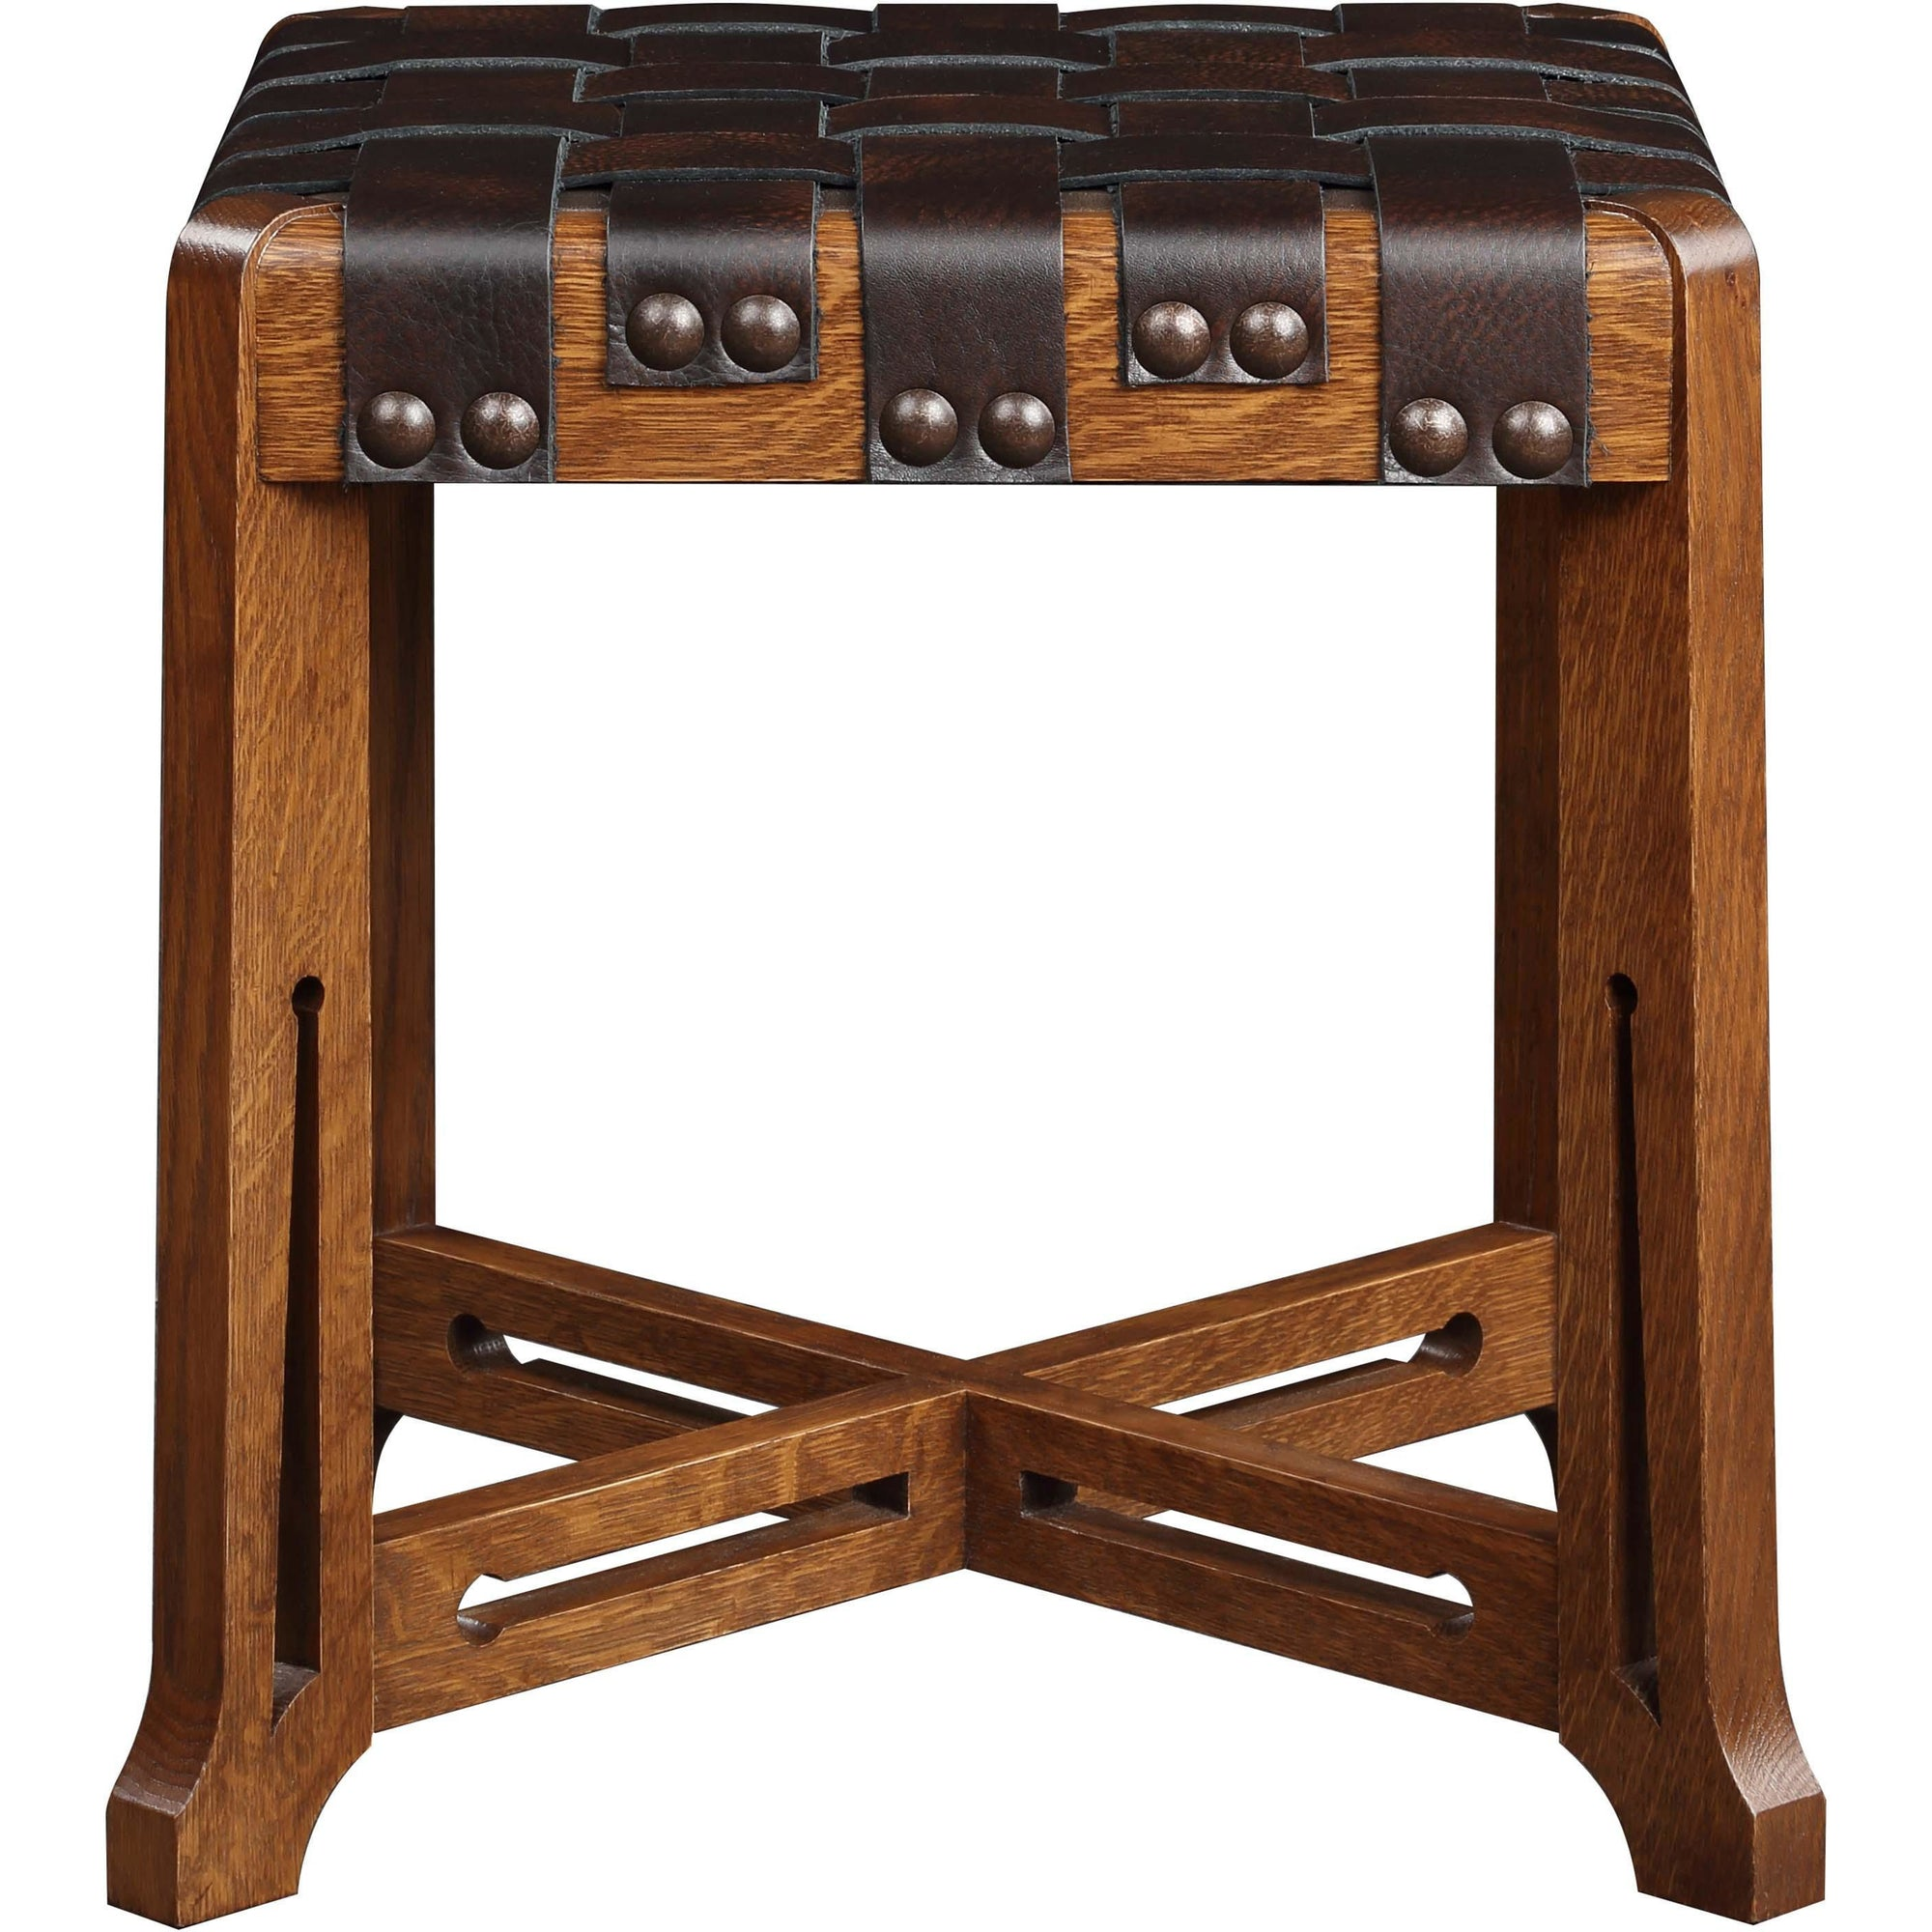 Little Treasures Leather Strap Stool